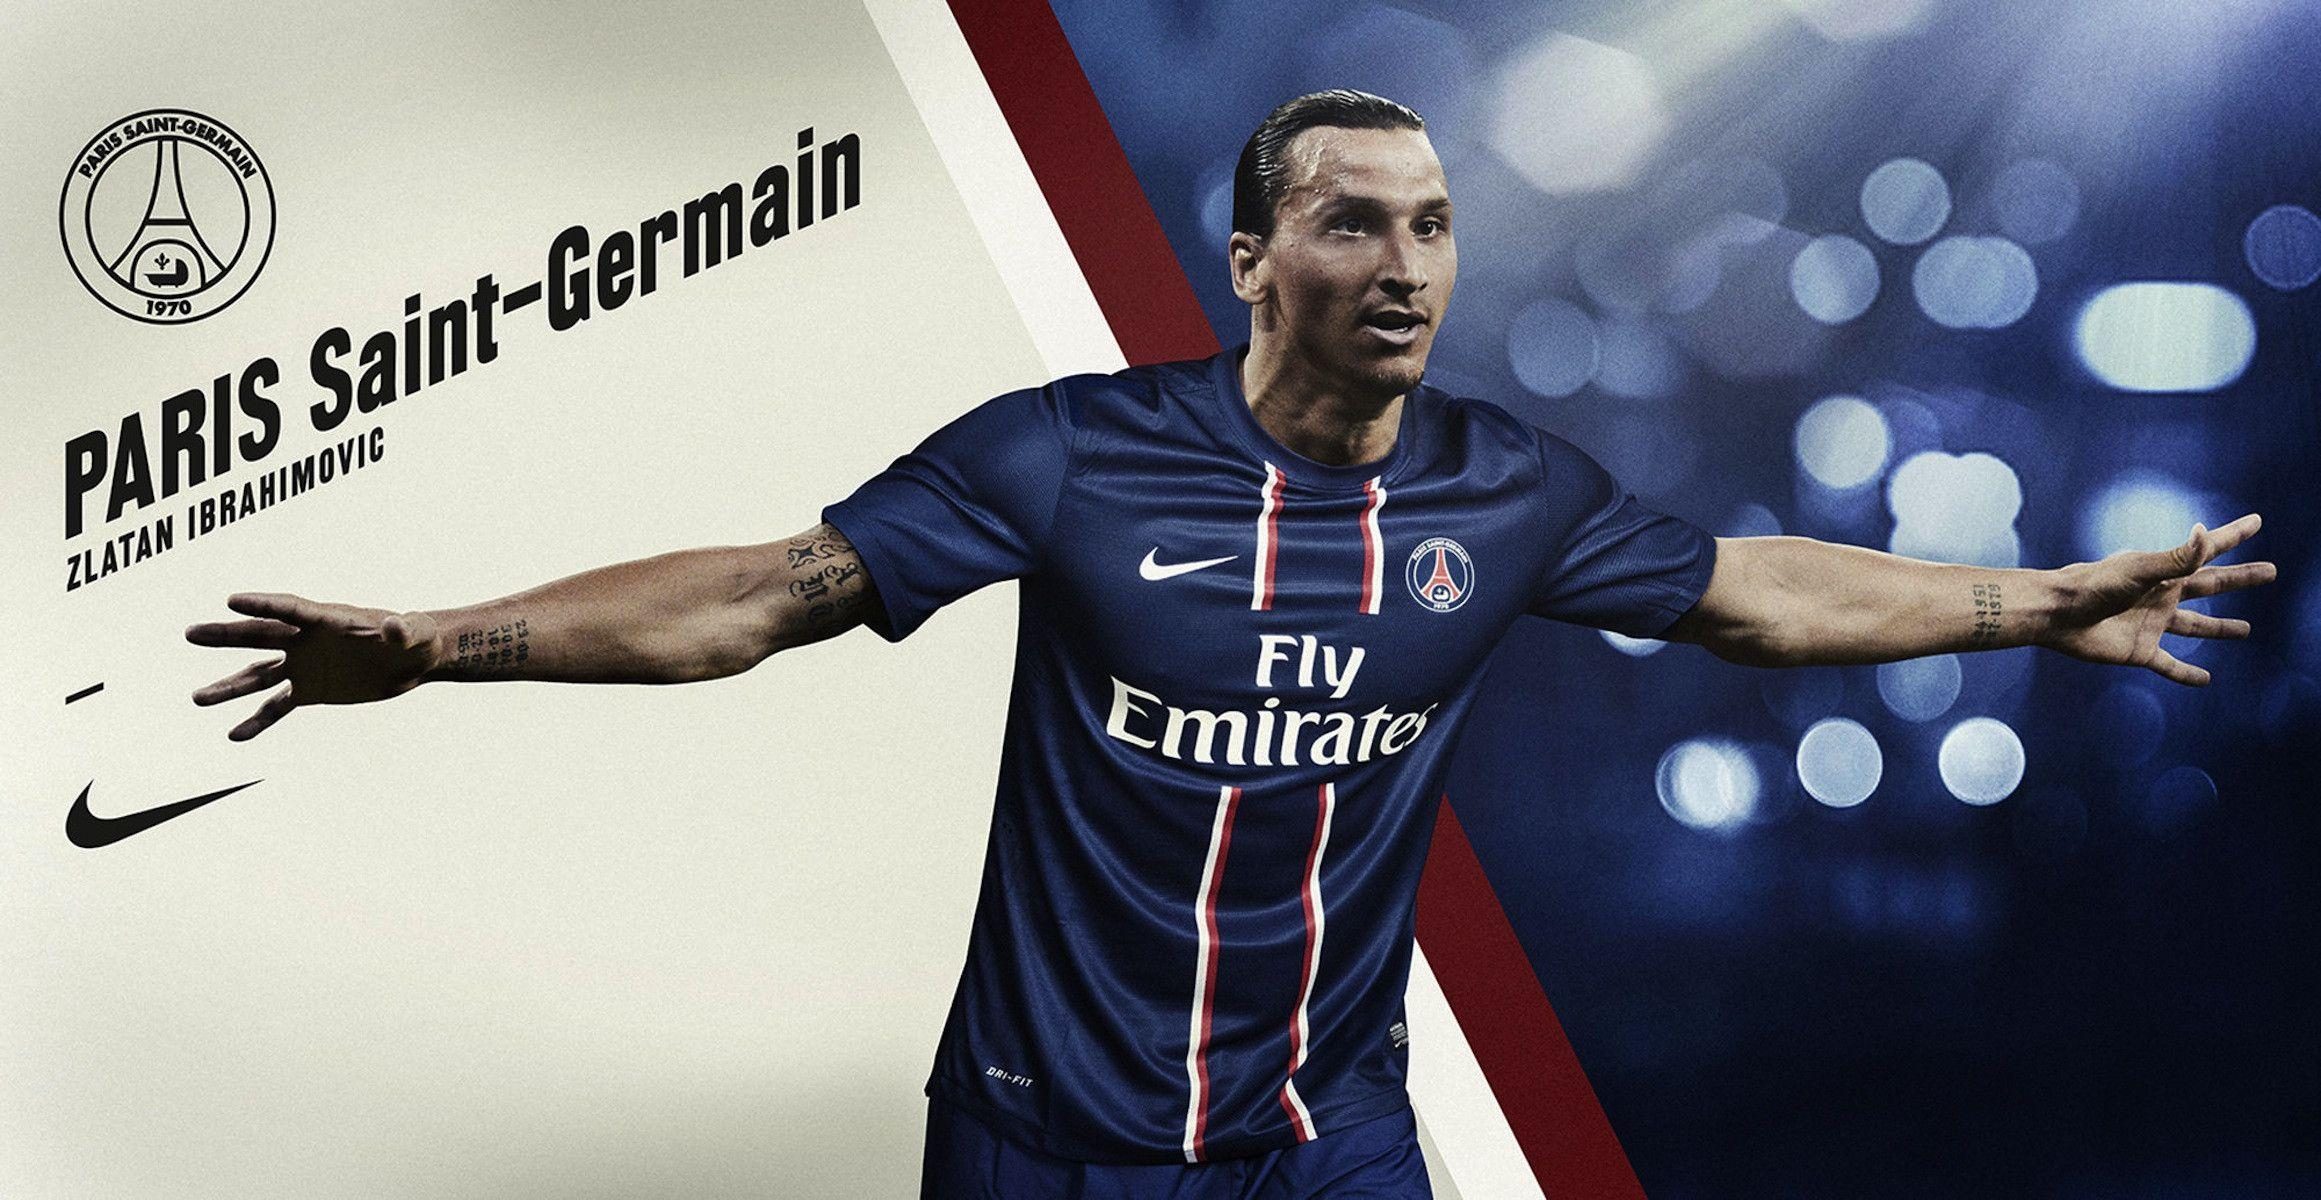 Zlatan Ibrahimovic PSG Wide HD Wallpaper